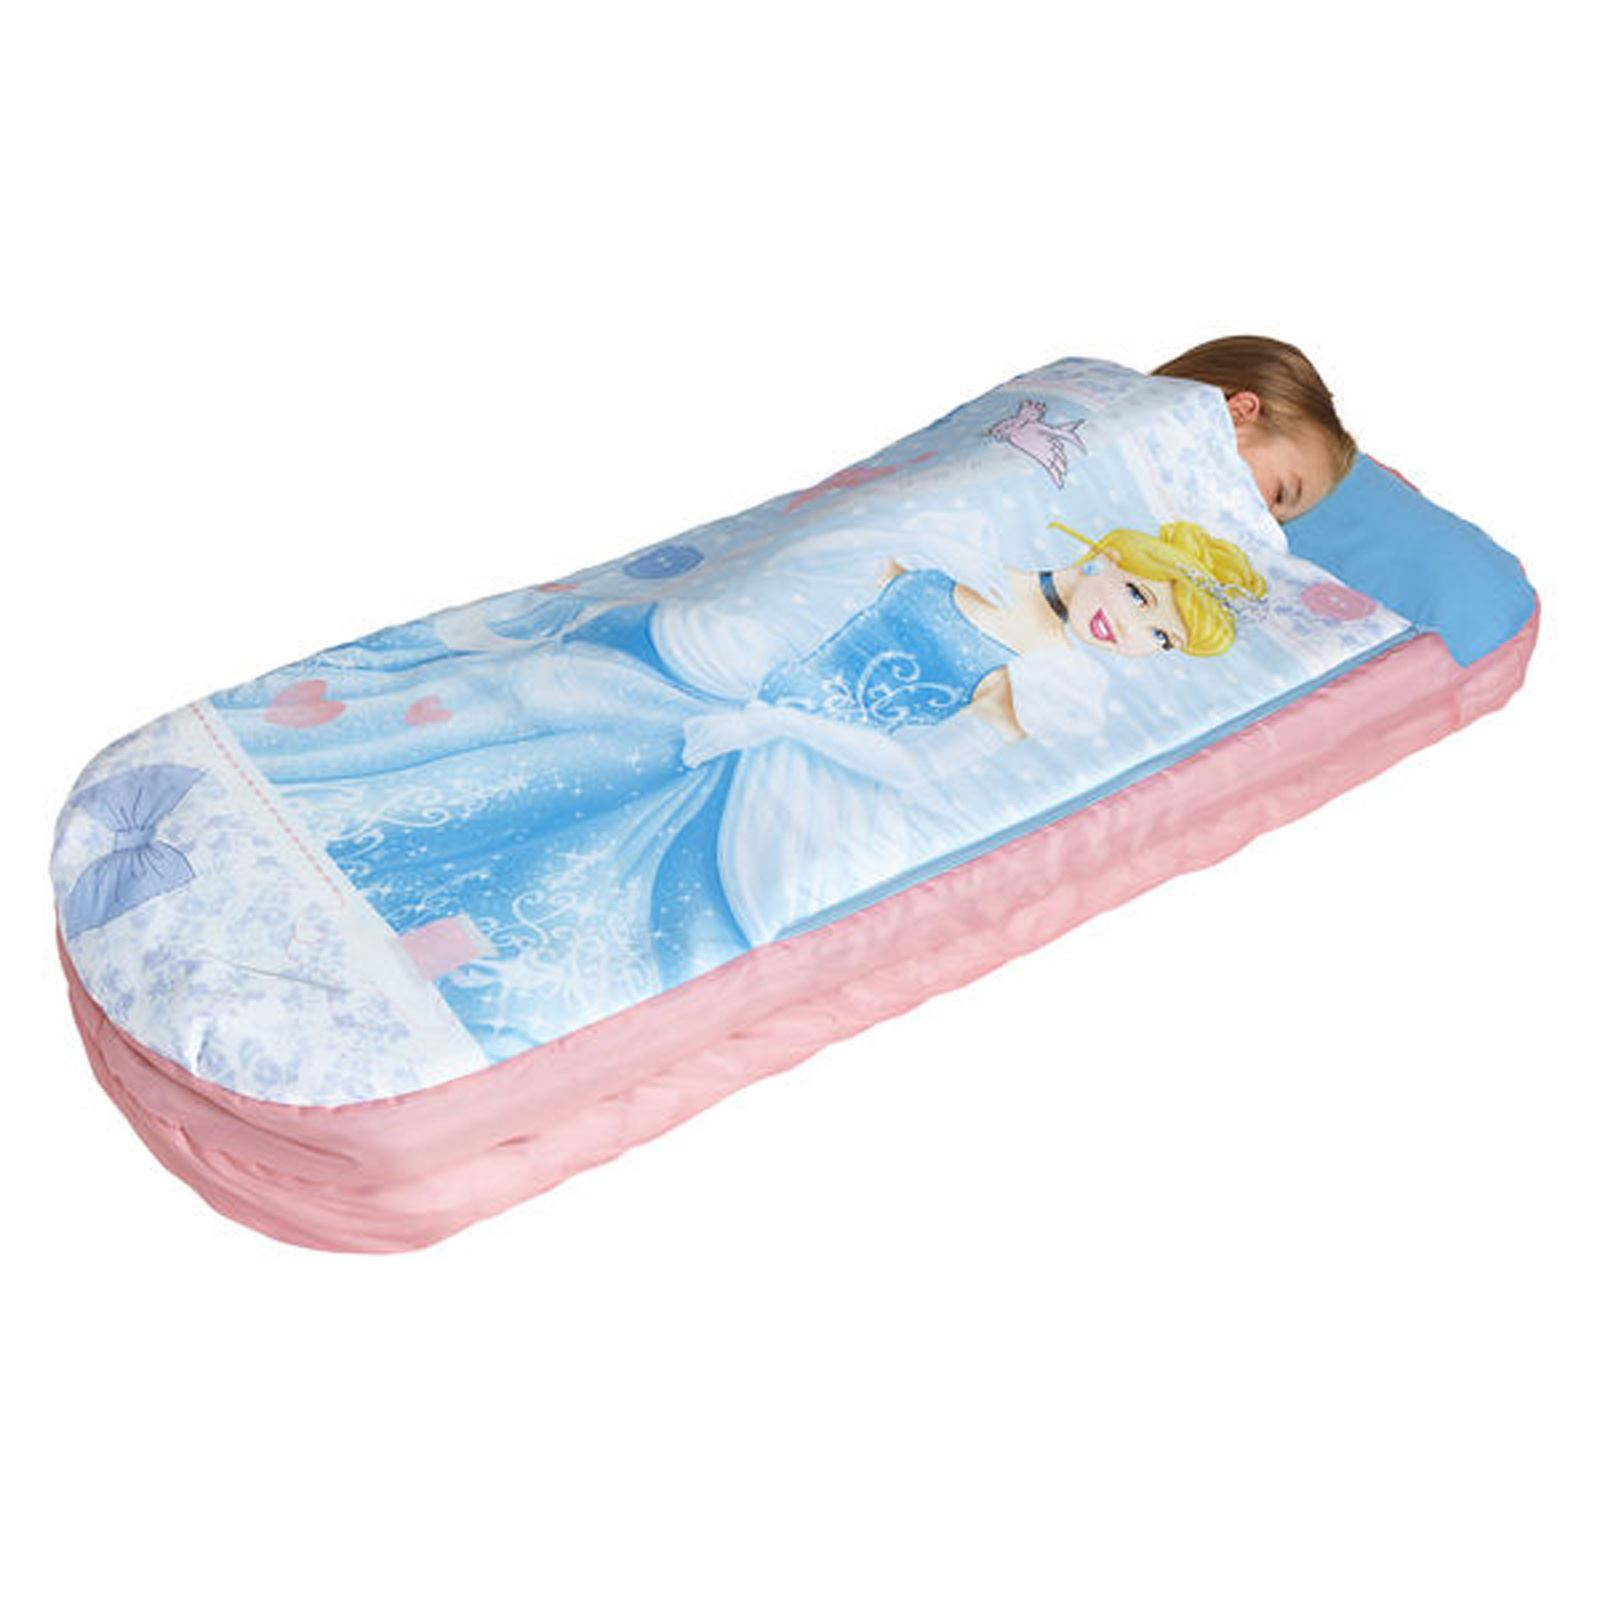 Inflatable bed for kids - Kids Readybeds Inflatable Bed Sleepover Camping Disney Cars